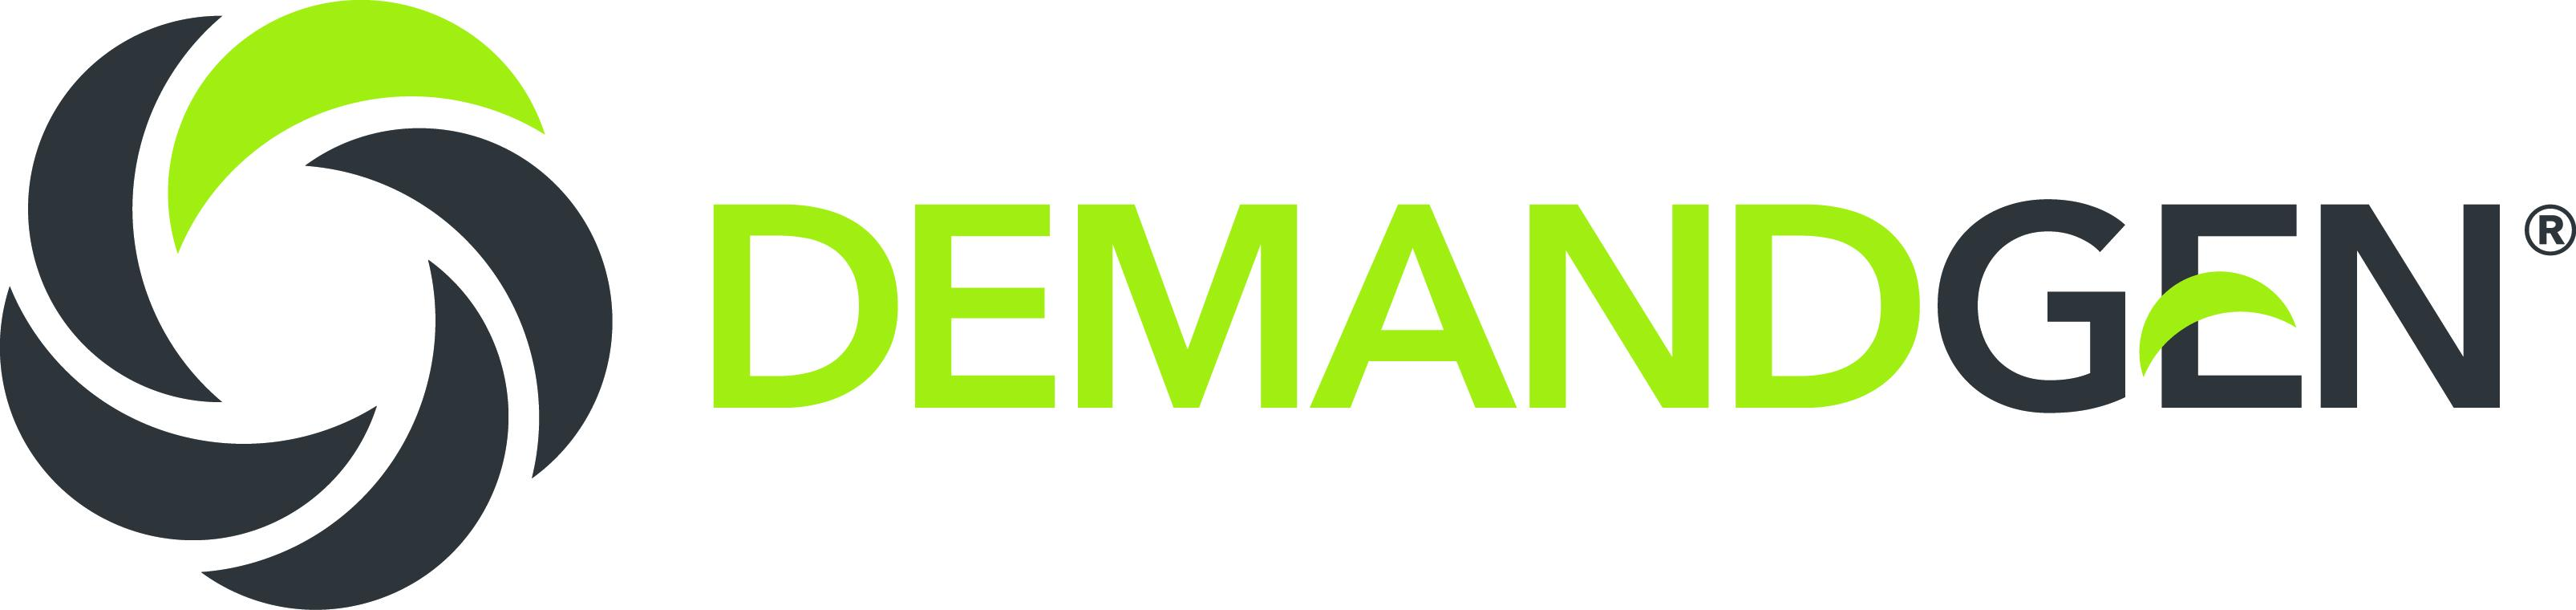 DemandGen International, Inc. Logo